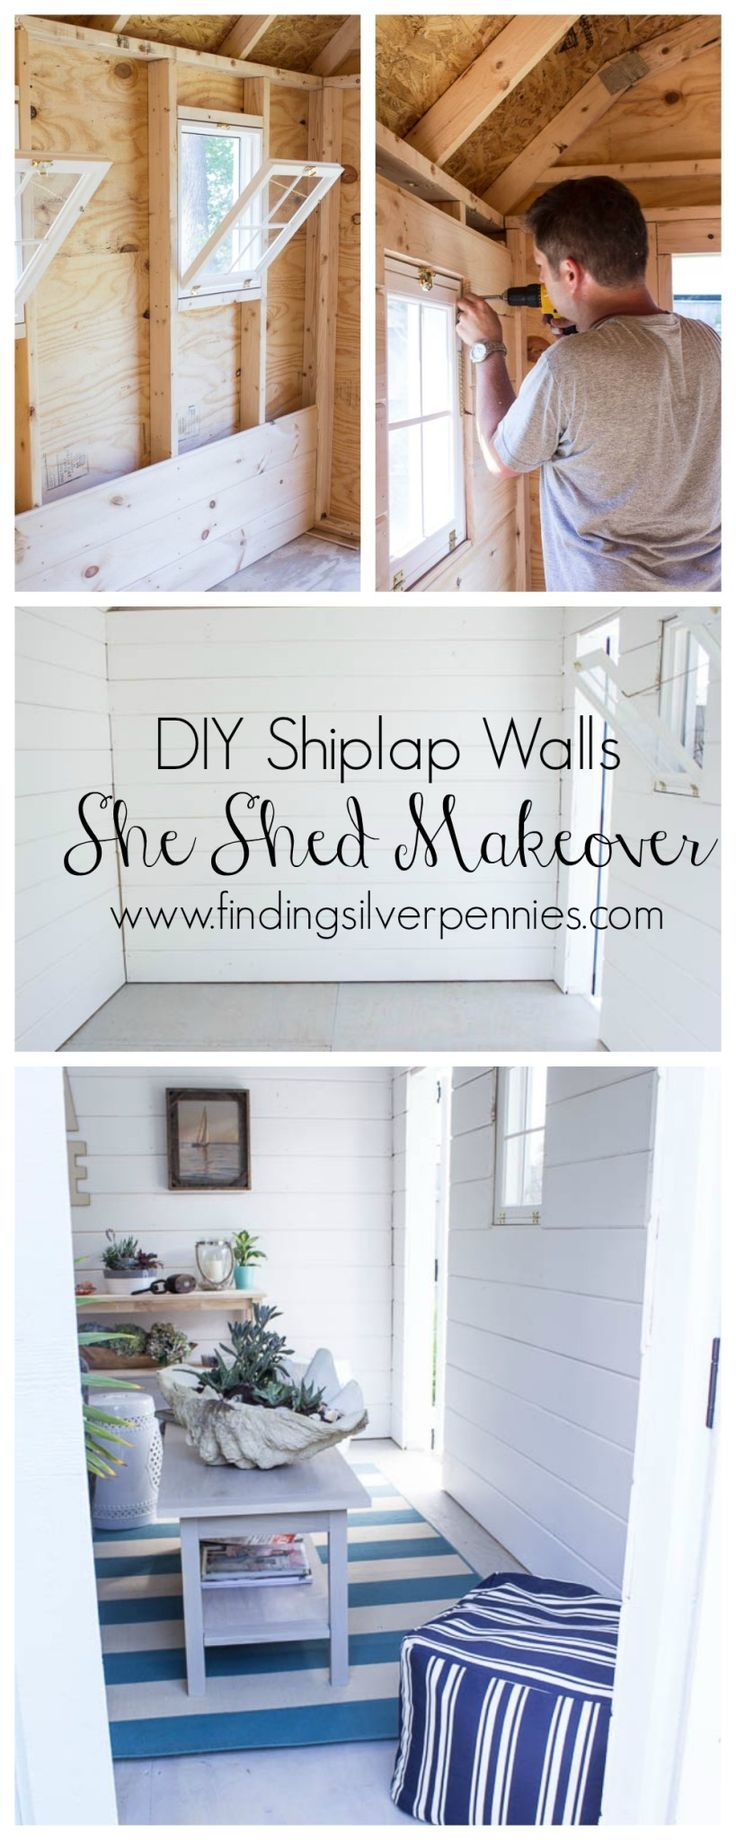 She Shed: DIY Shiplap Walls | Diy shiplap walls, Walls and Tiny houses